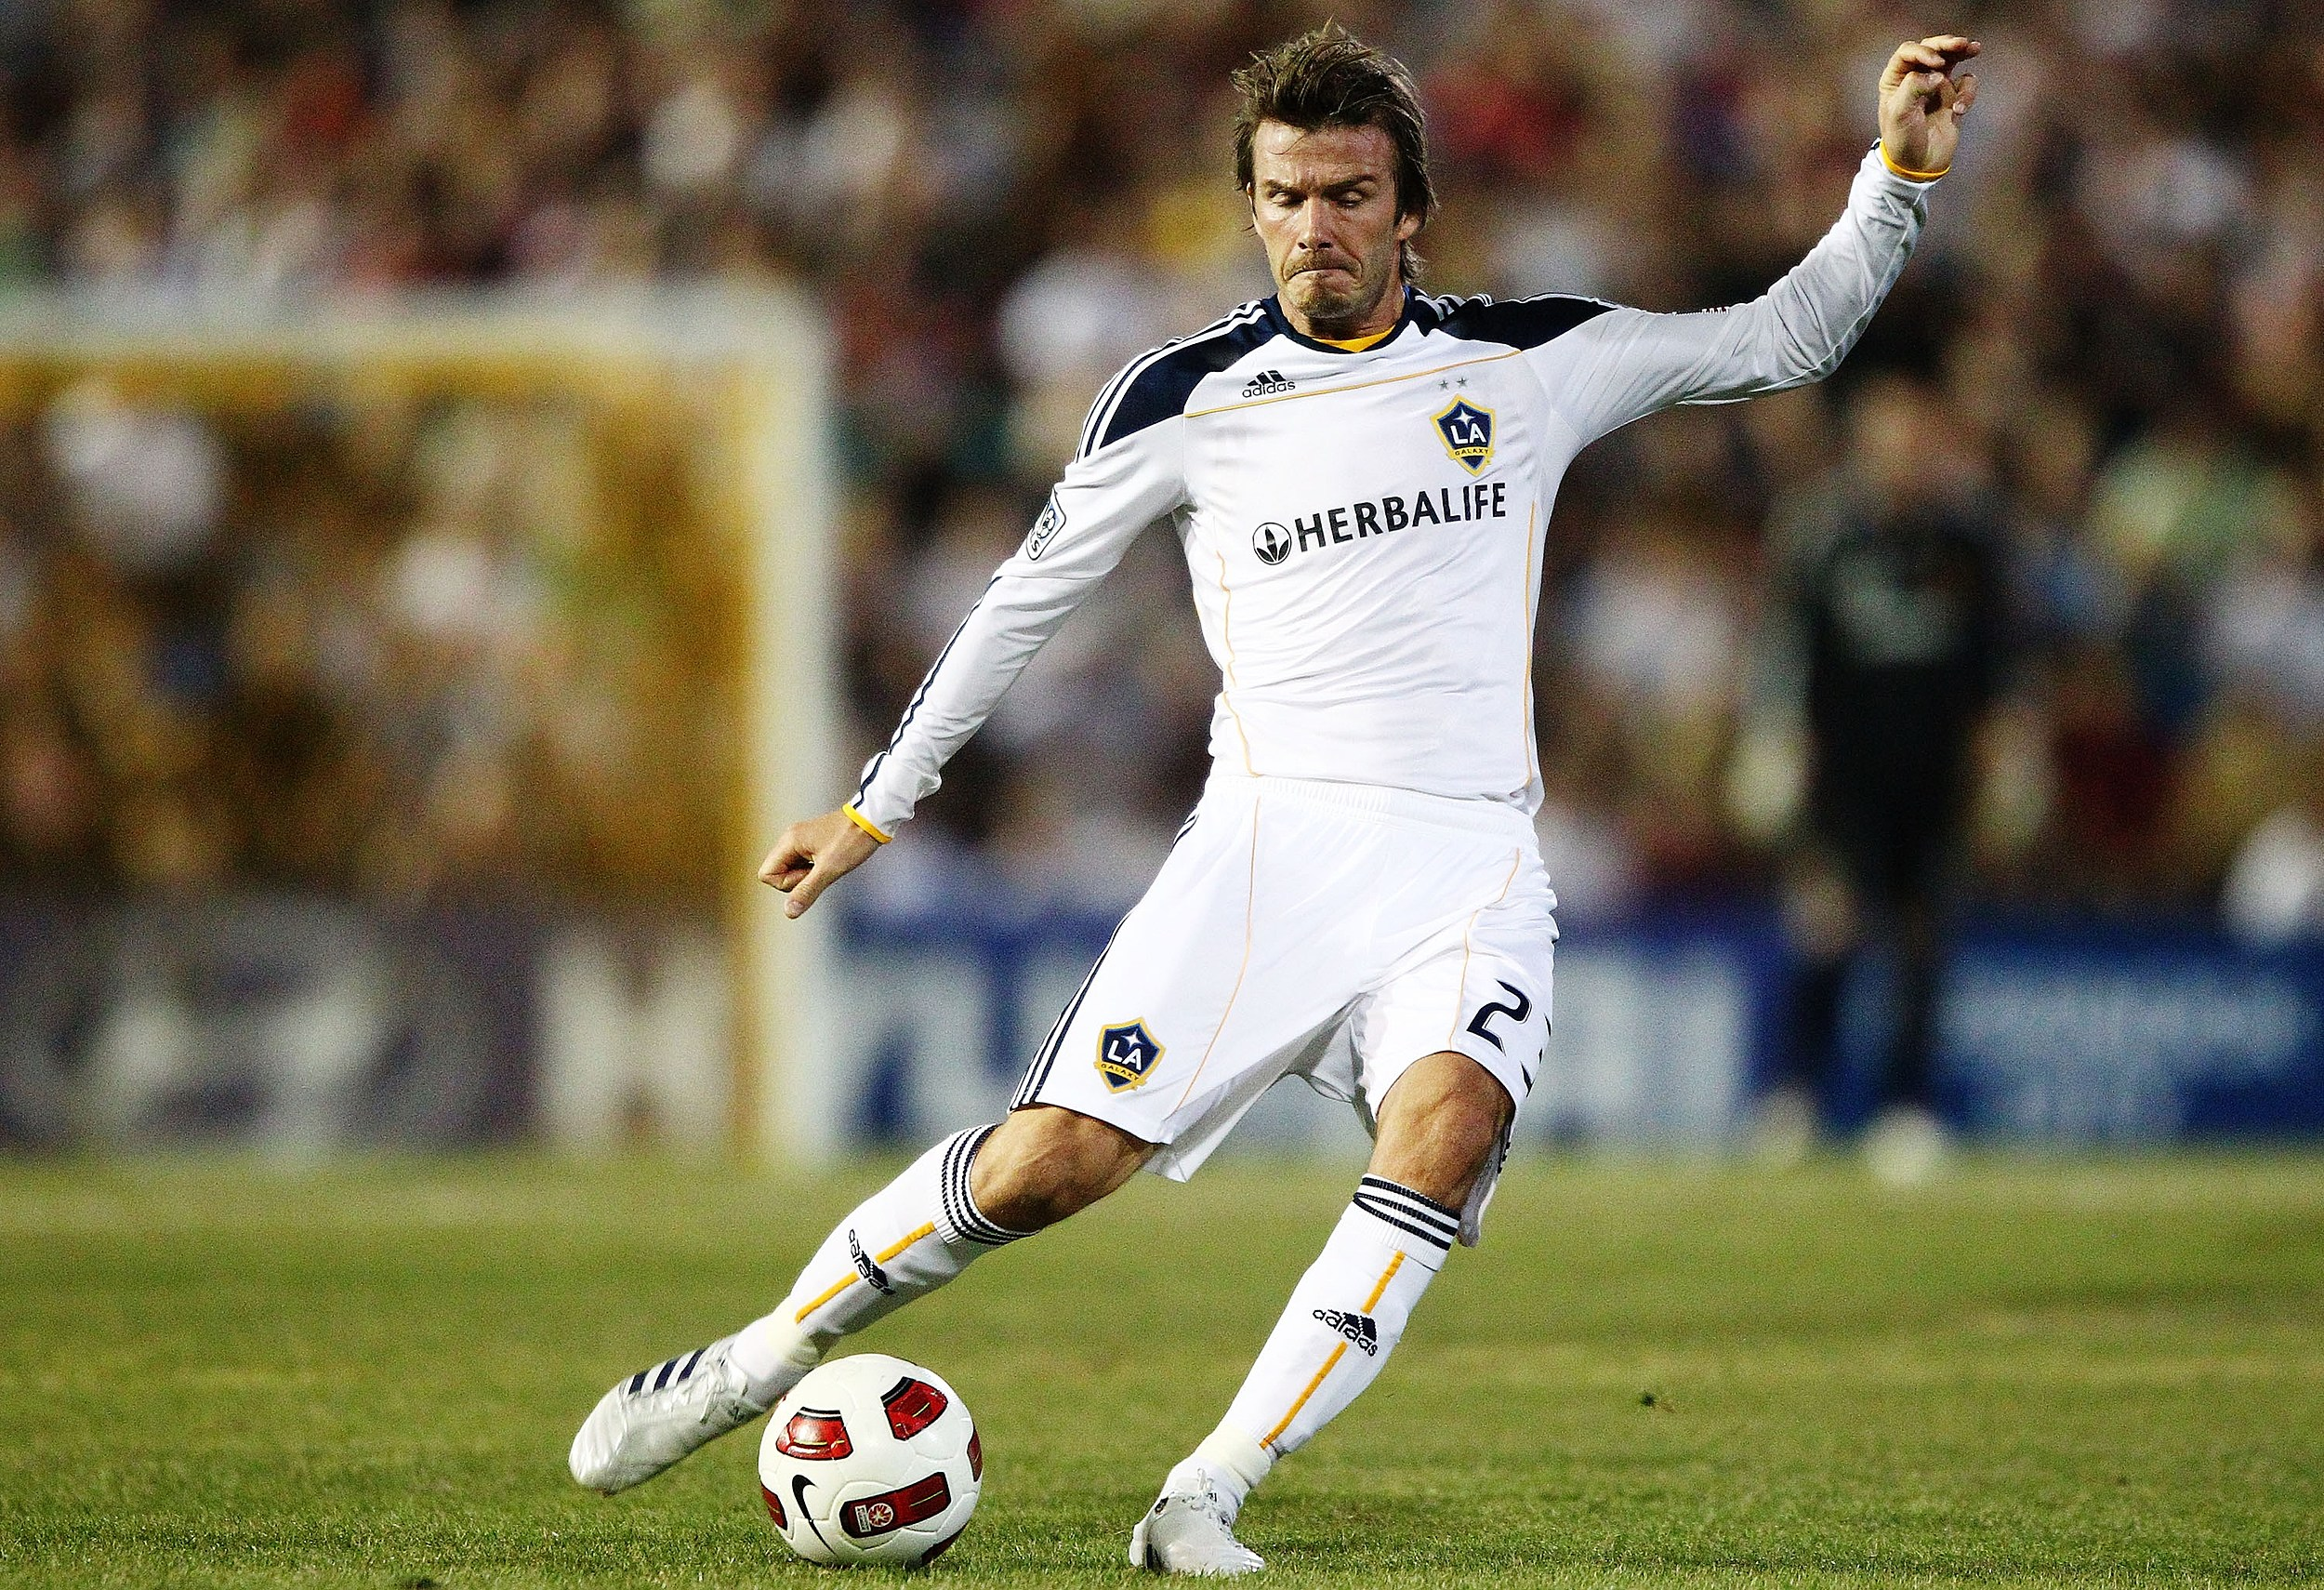 Pleasant David Beckham Soccer England More Information Hairstyle Inspiration Daily Dogsangcom